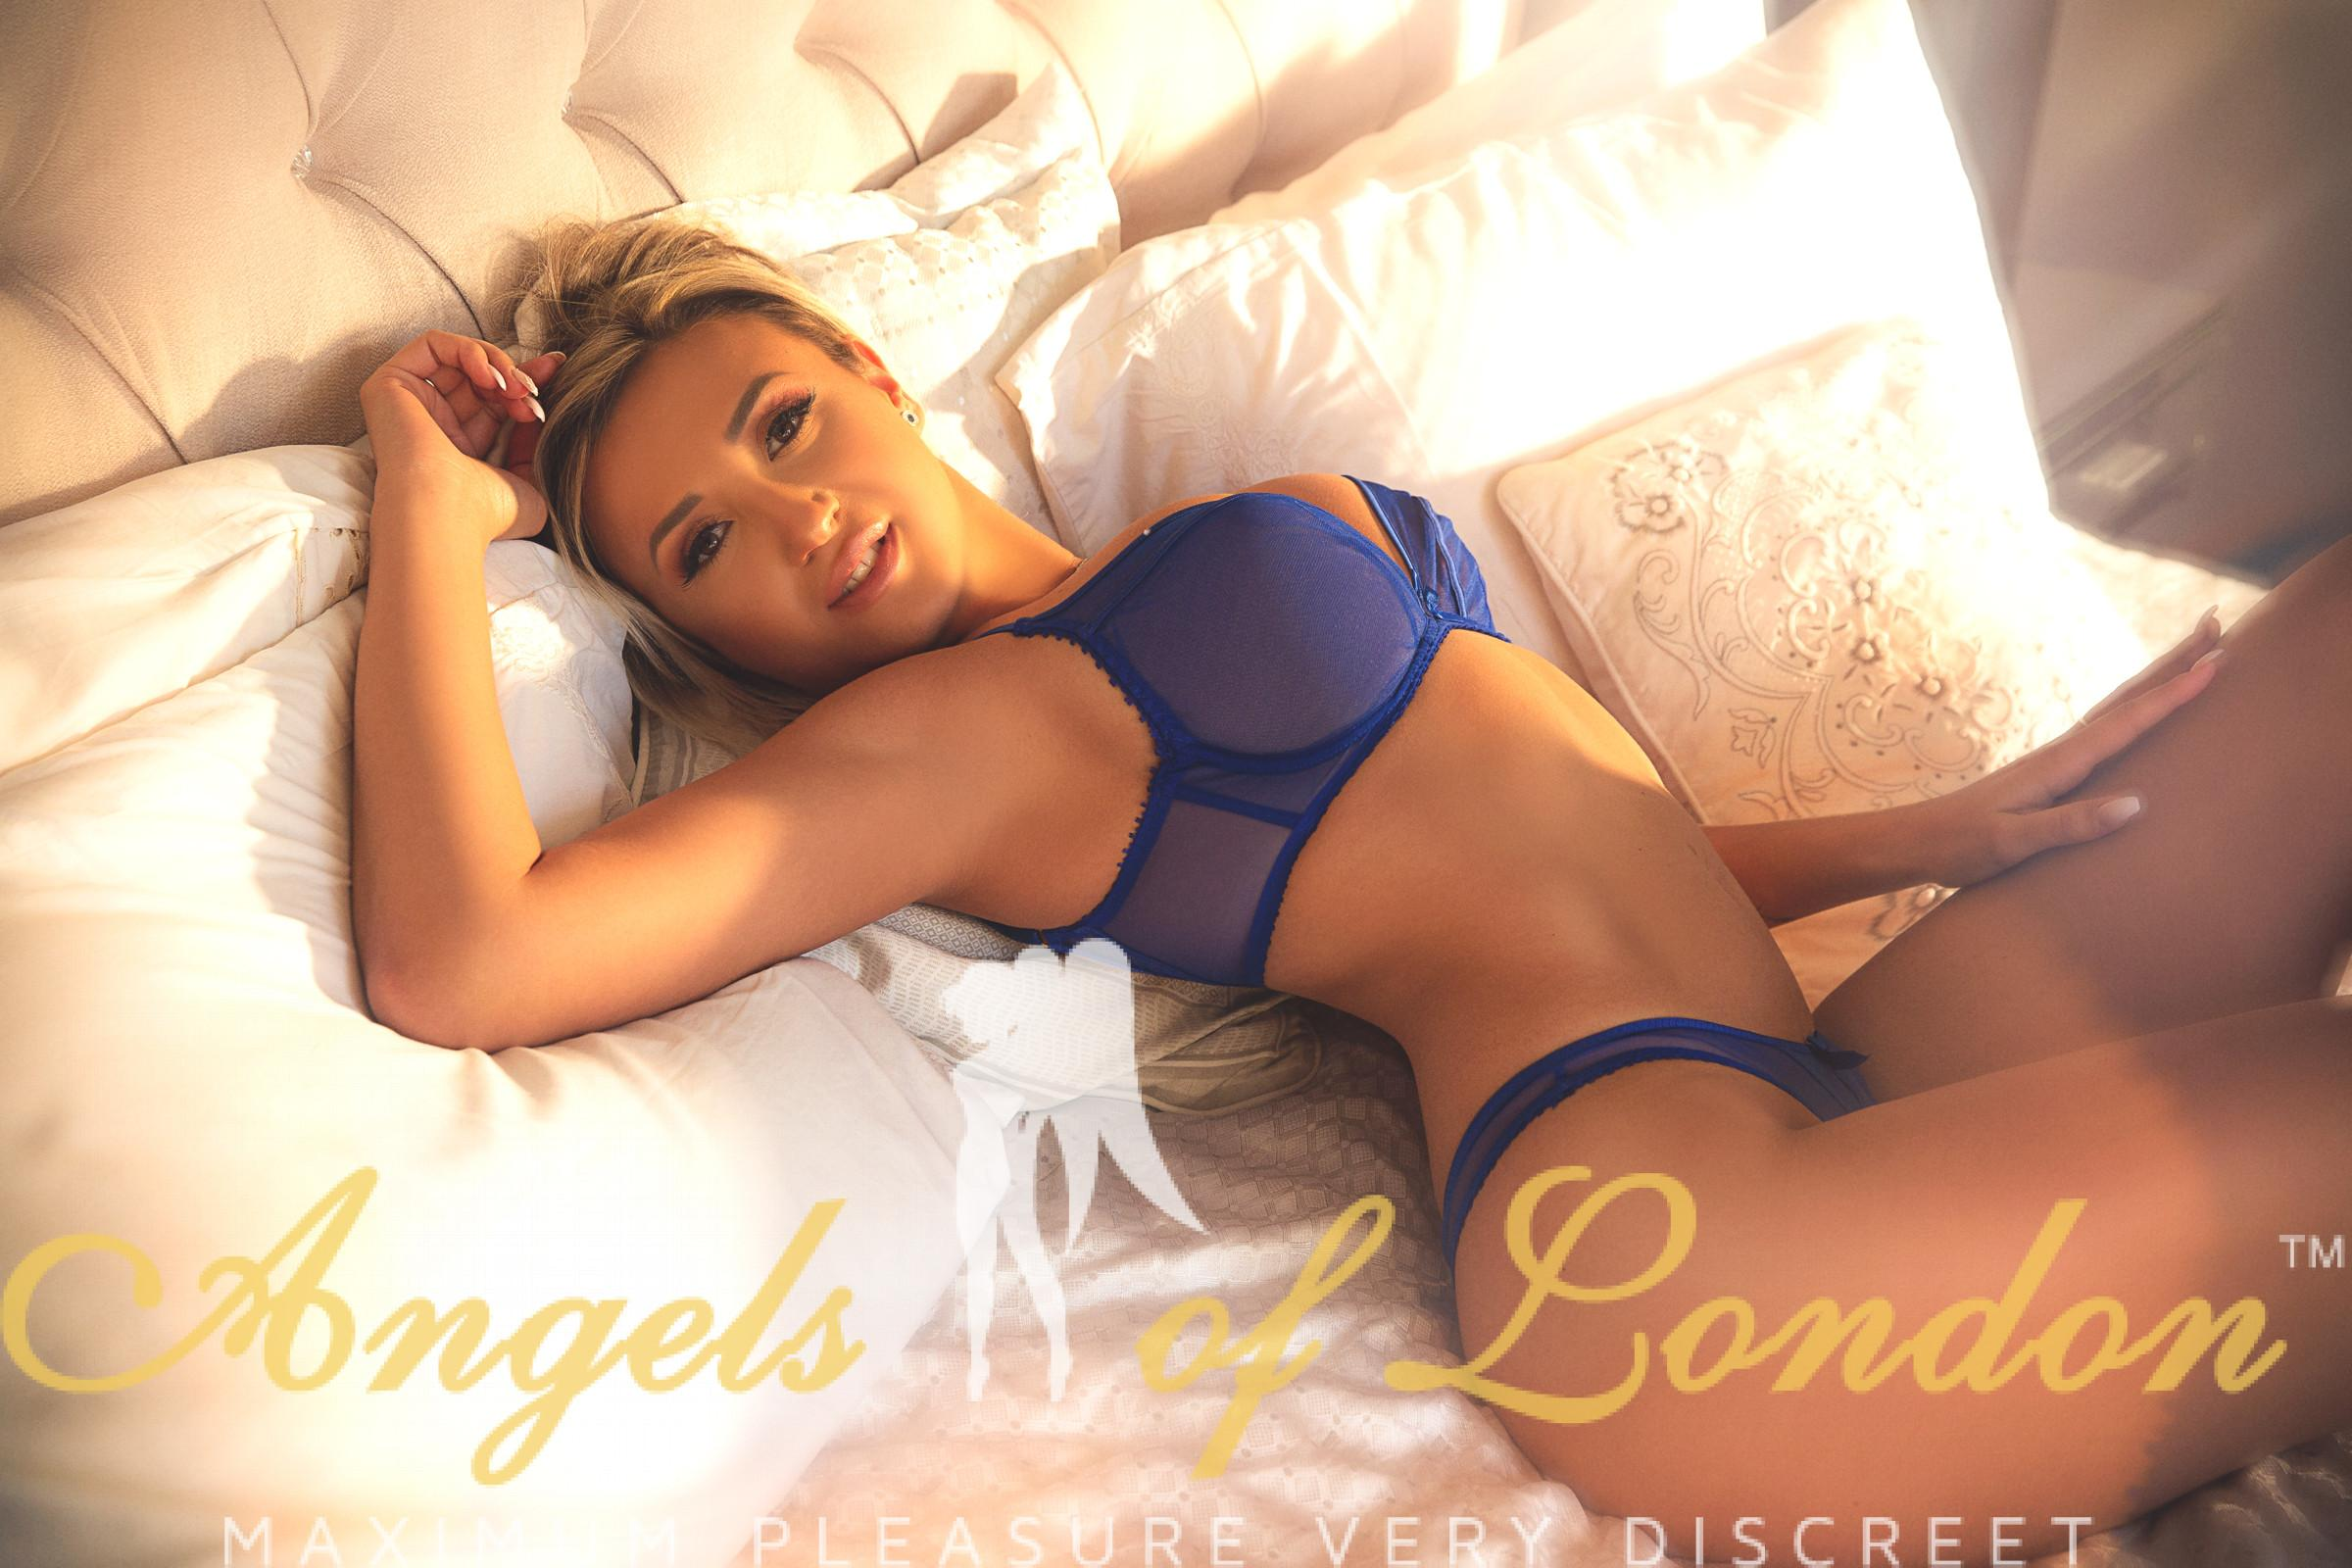 Karina from Angels of London